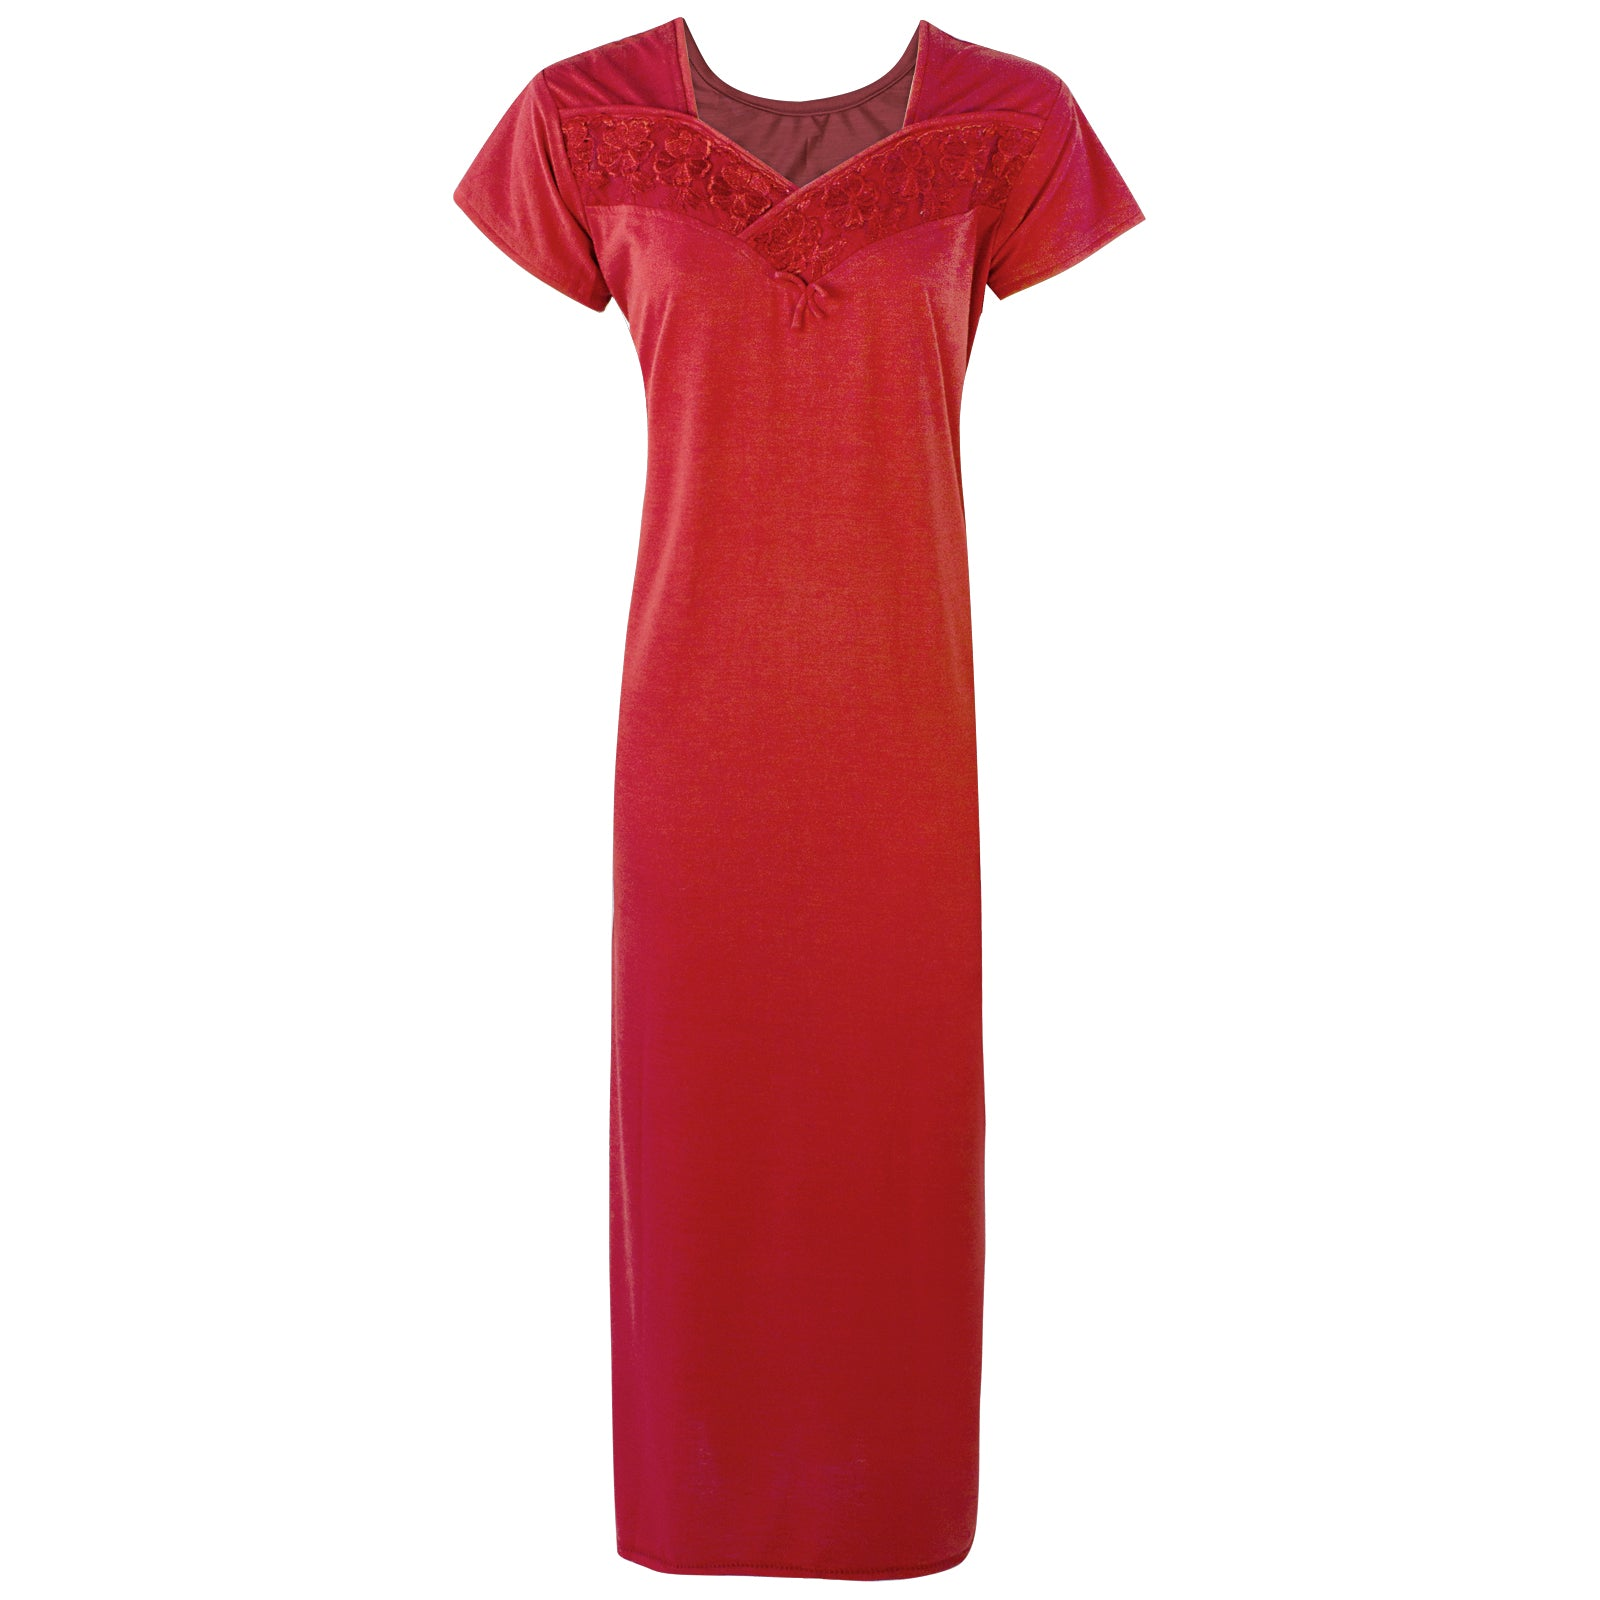 Colour: Deep Red Cotton Blend Comfy Jersey Nightdress Size: 12-16